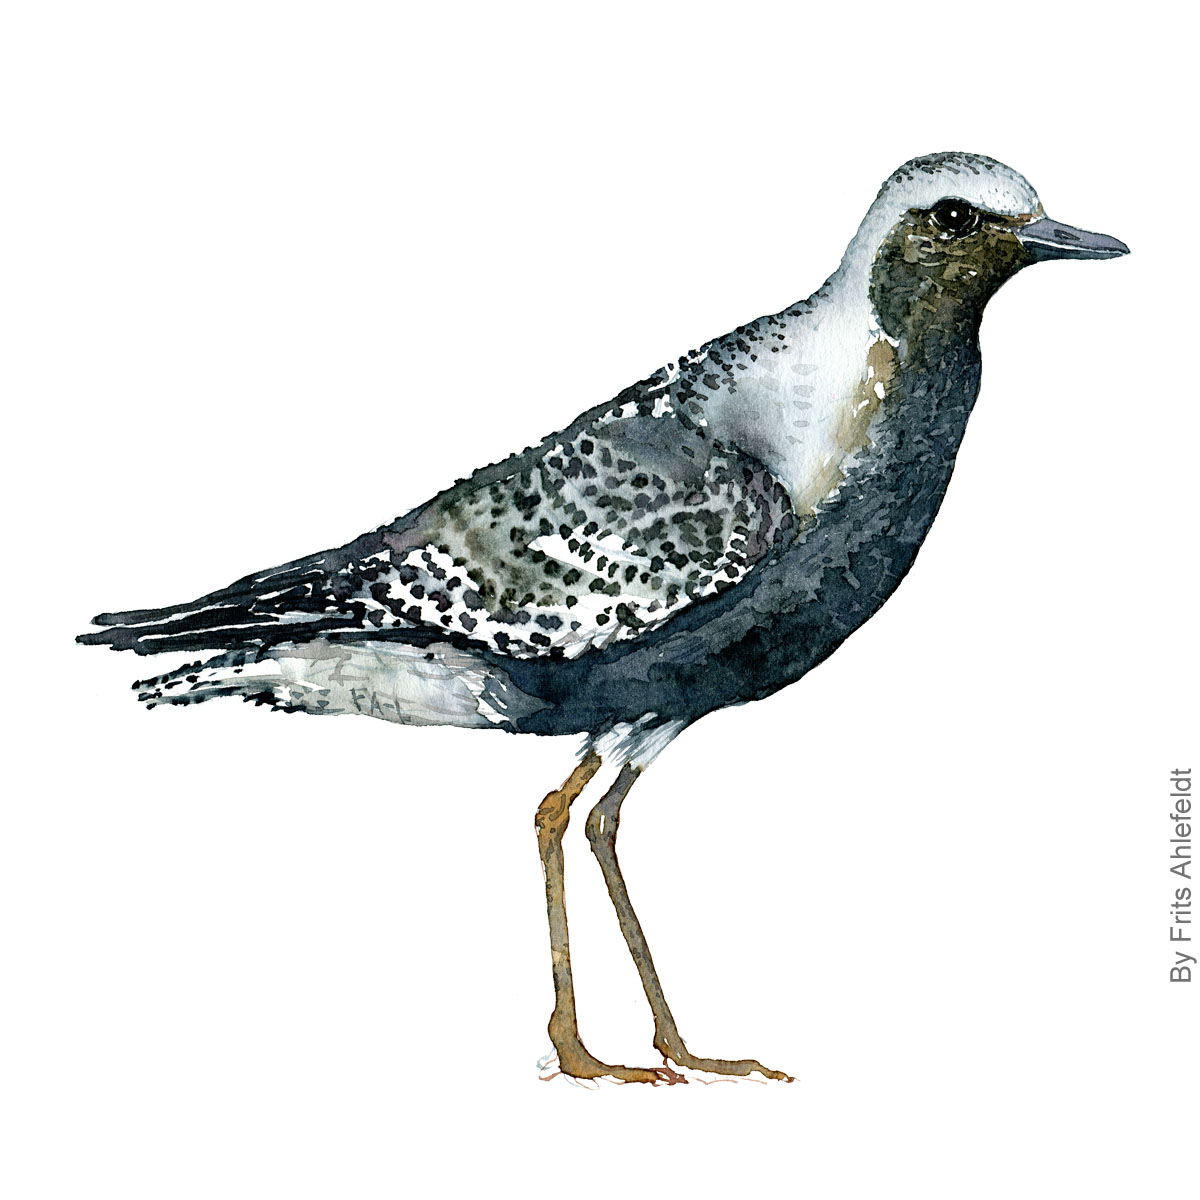 Watercolour illustration of a grey plover bird.( Hjejle ) Painting by Frits Ahlefeldt